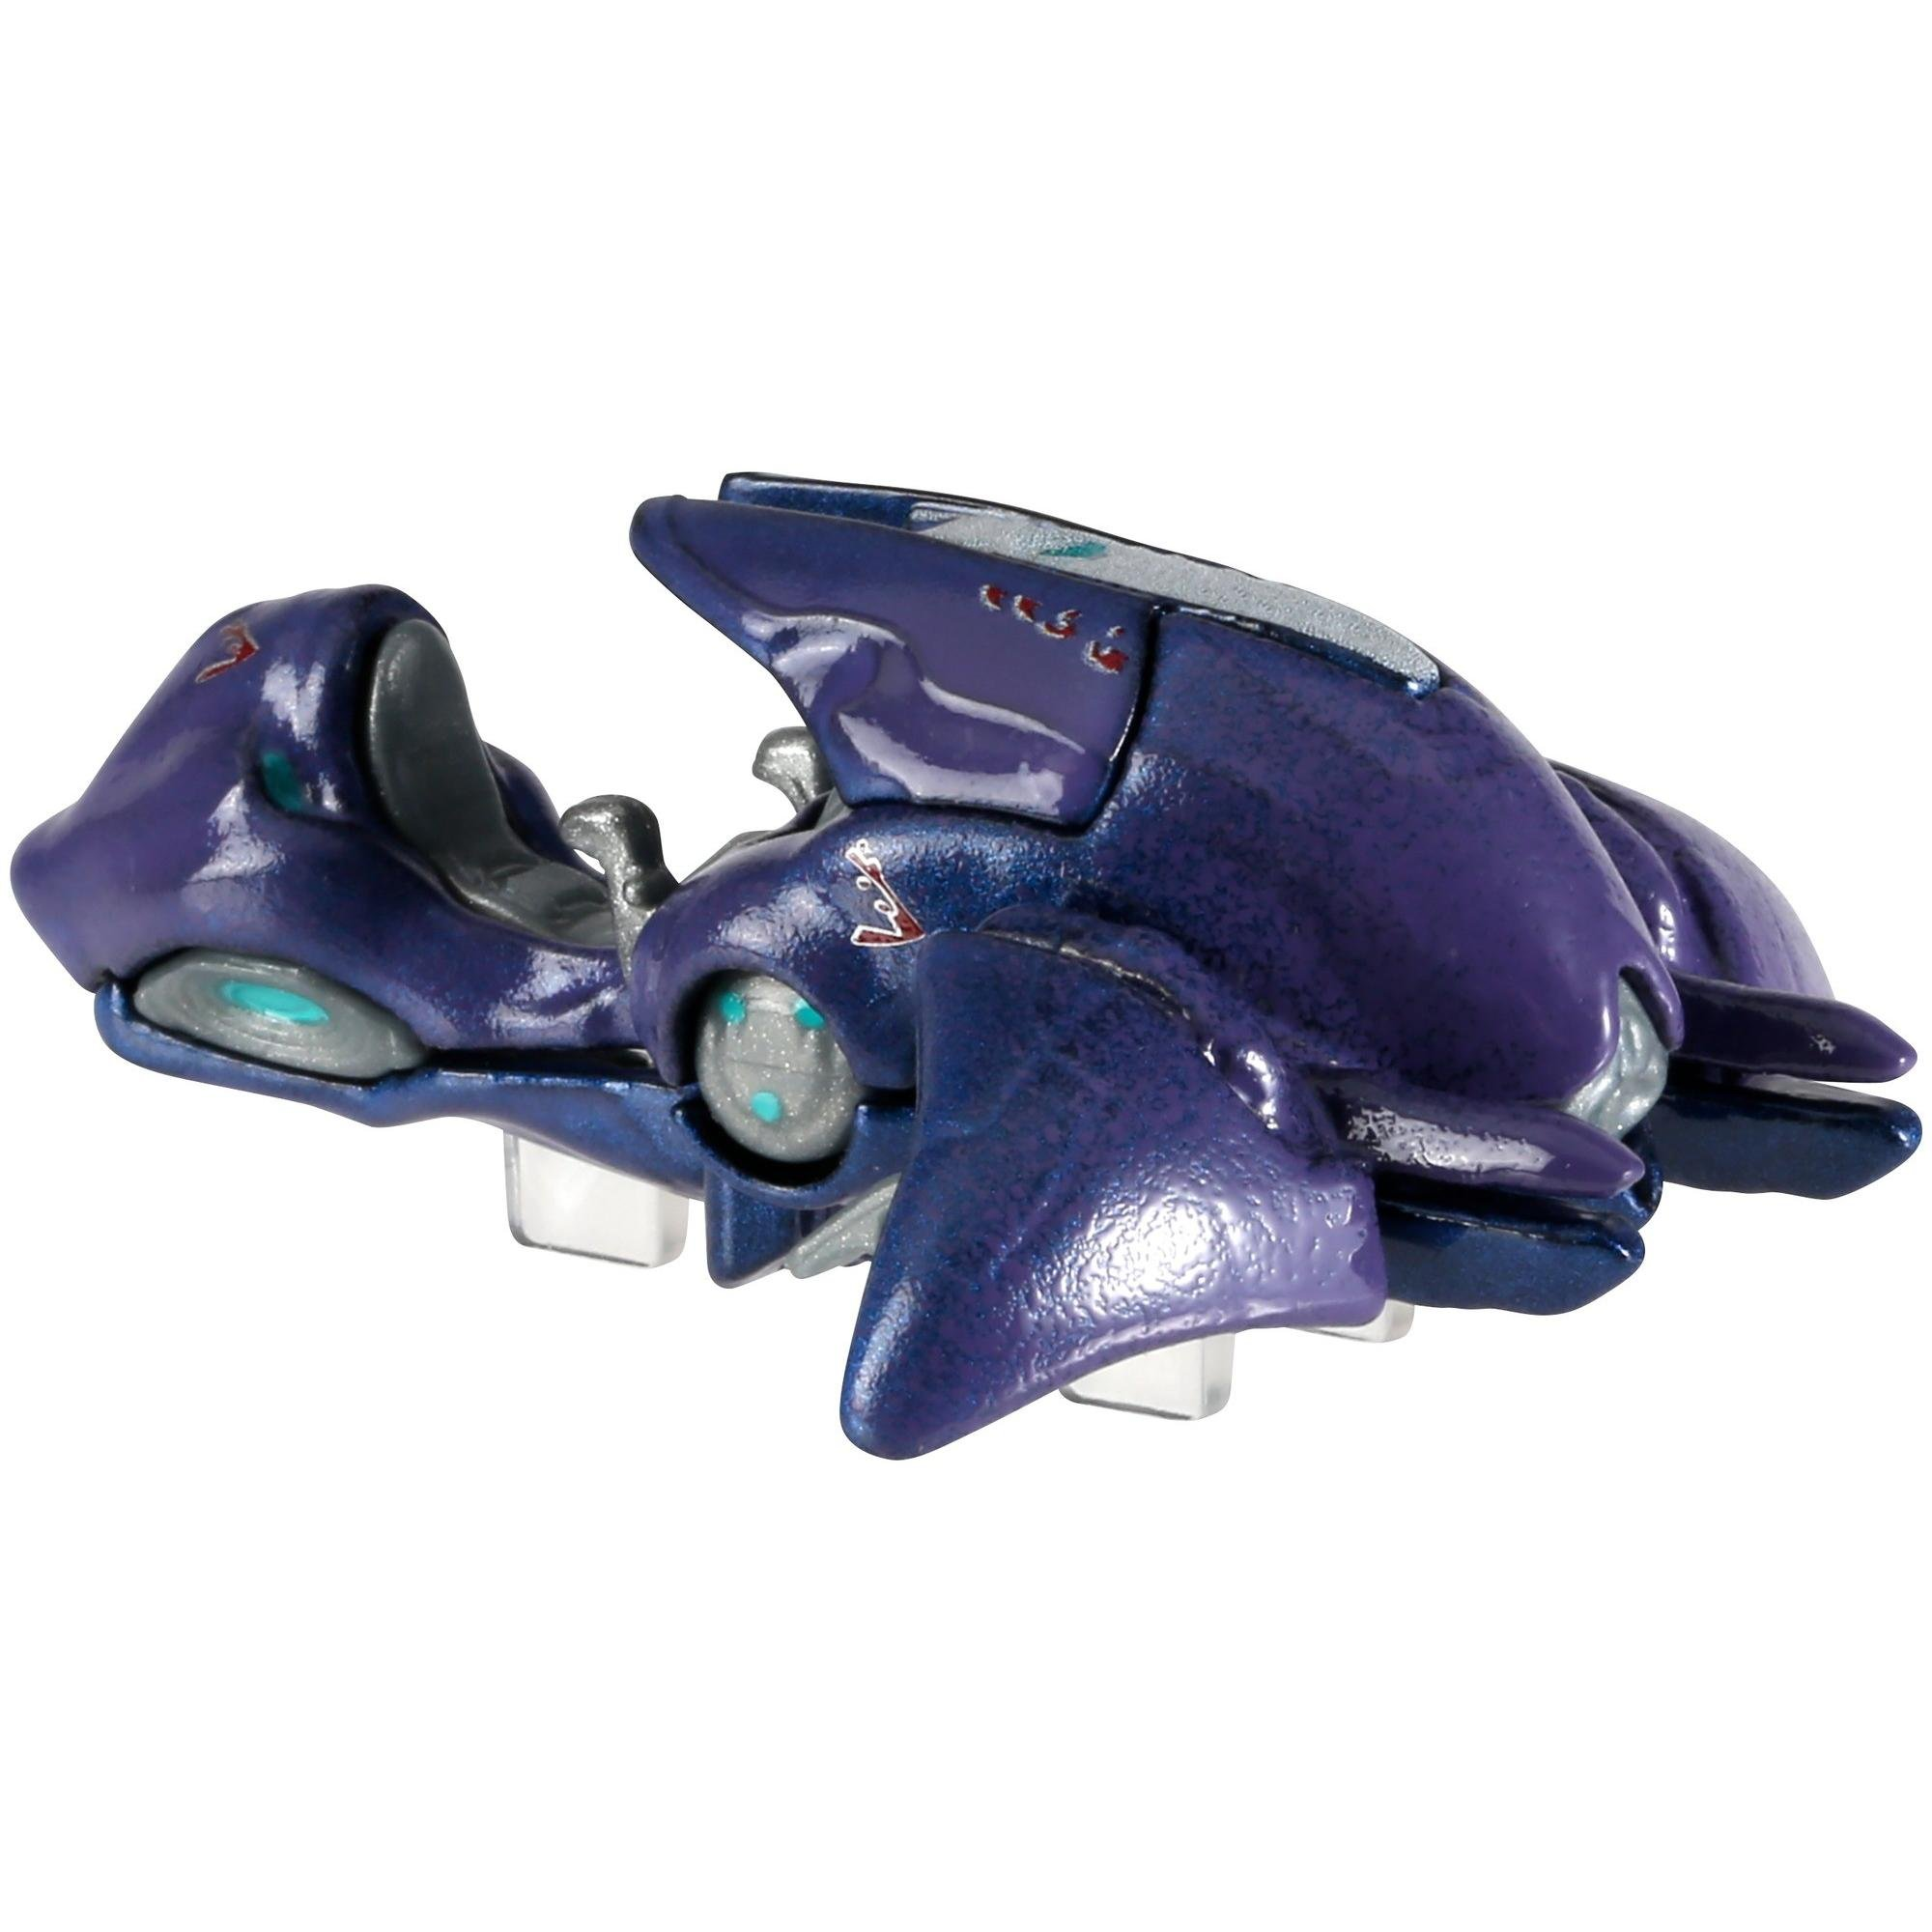 Carrinho Hot Wheels Covenant Ghost: Halo - Mattel